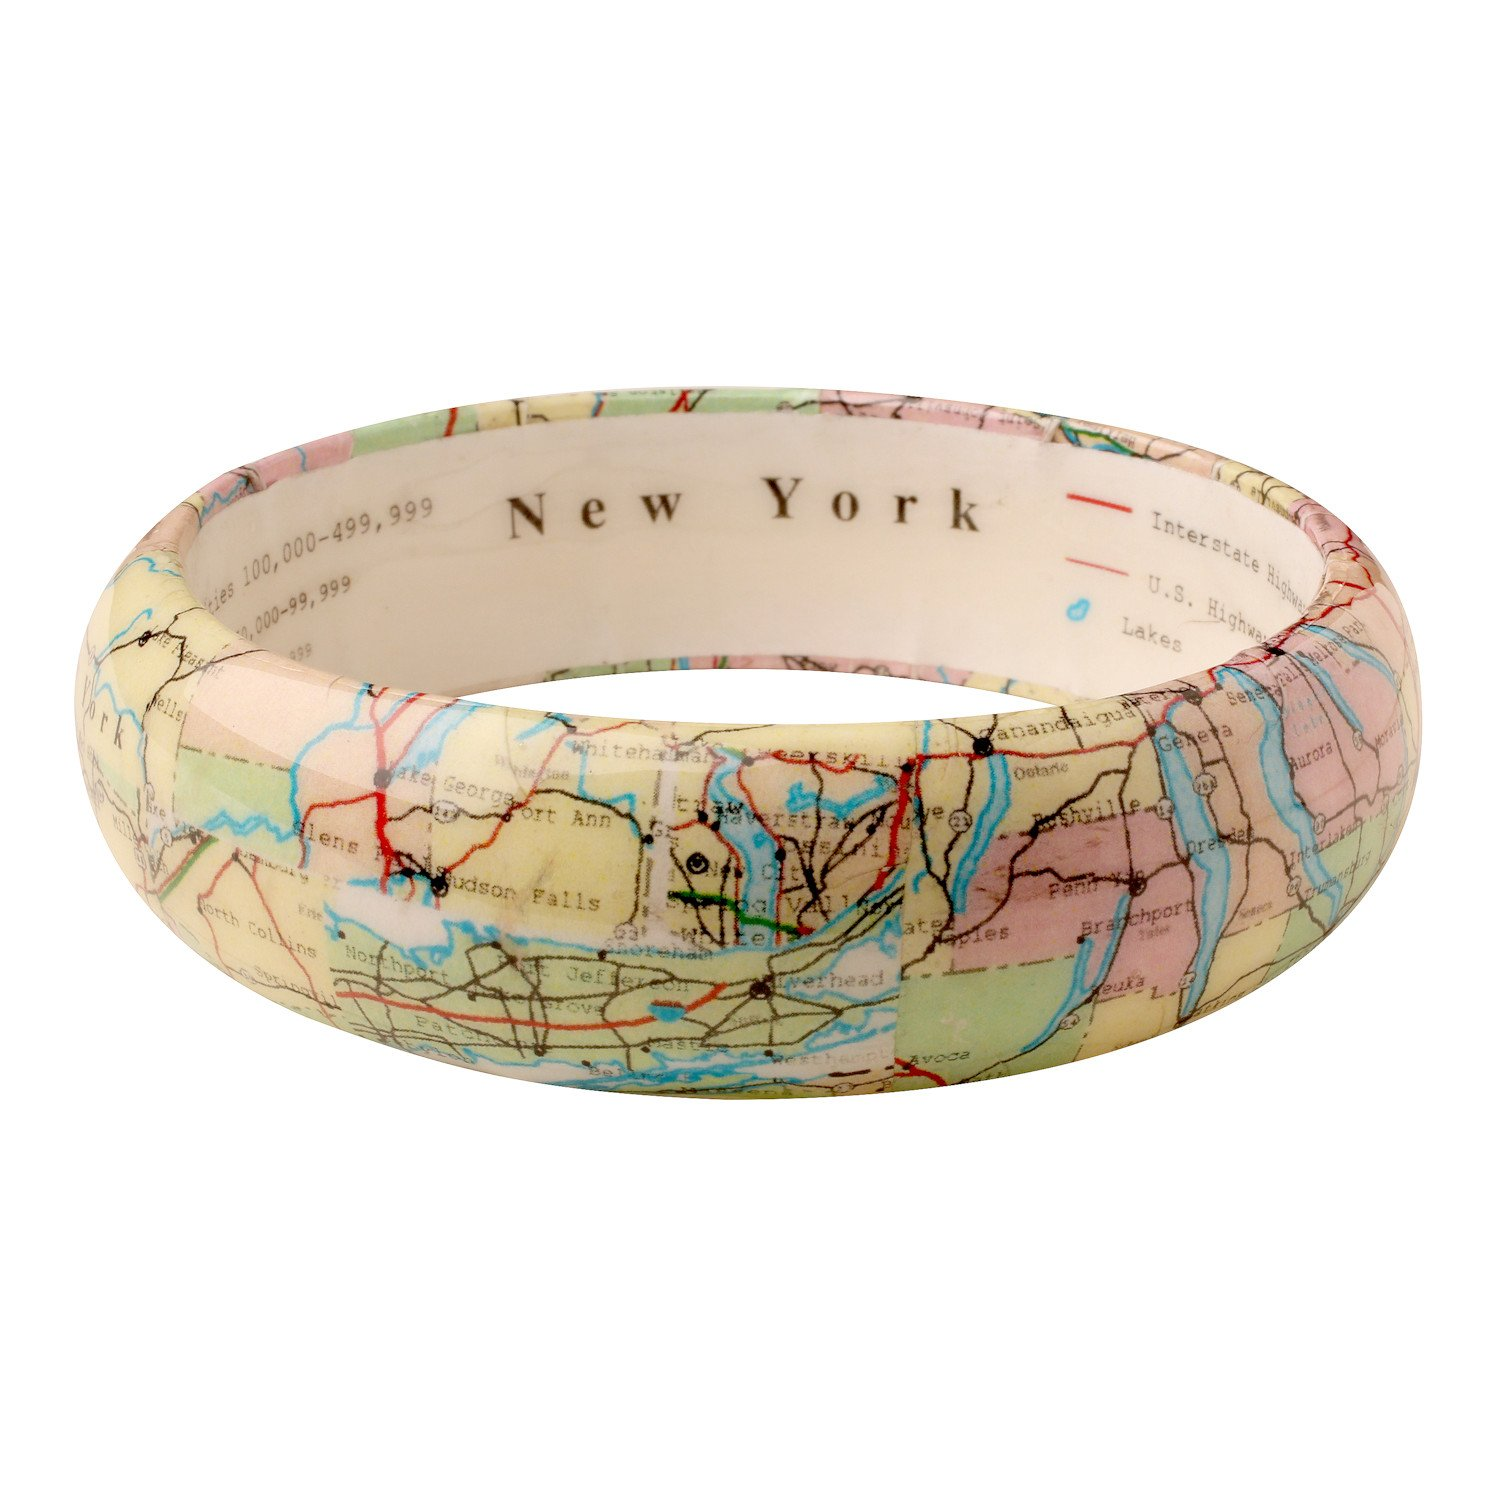 FLORIANA Women's State Map Bangle Bracelet - Clear Resin over Paper Map - New York